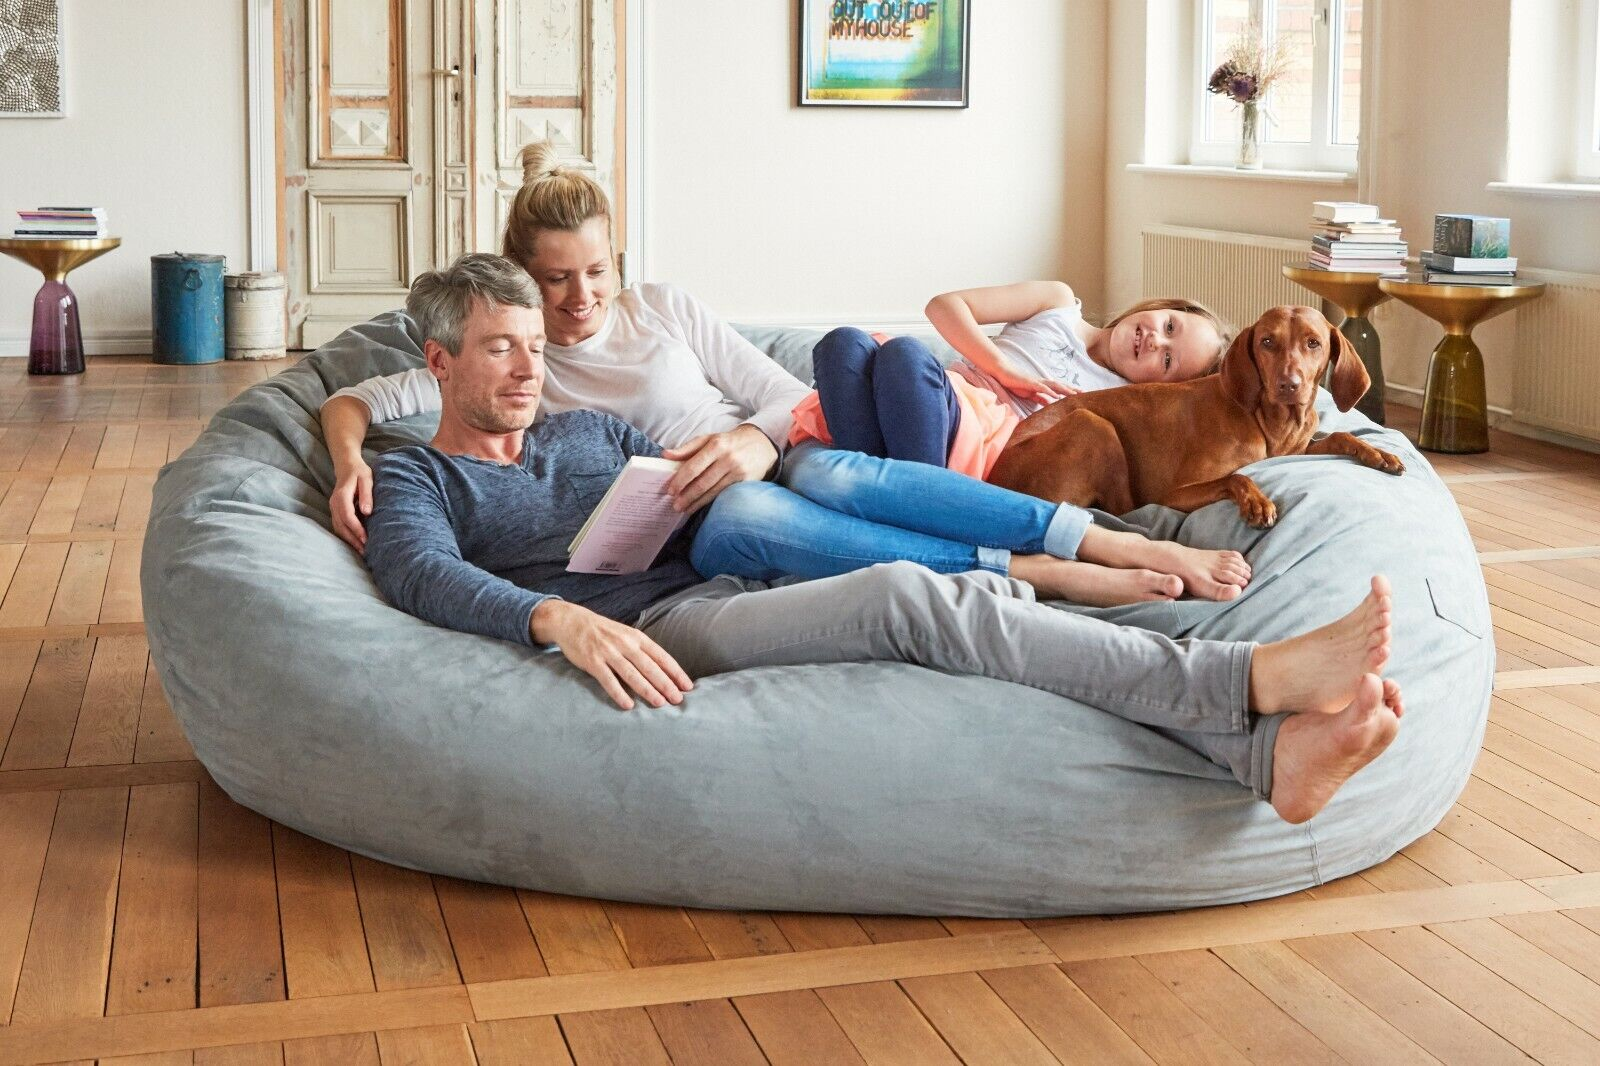 Big Cozy Bean Bag Chair Lazy Relax Seat Sofa Couch Media Lounger Faux Suede Sack